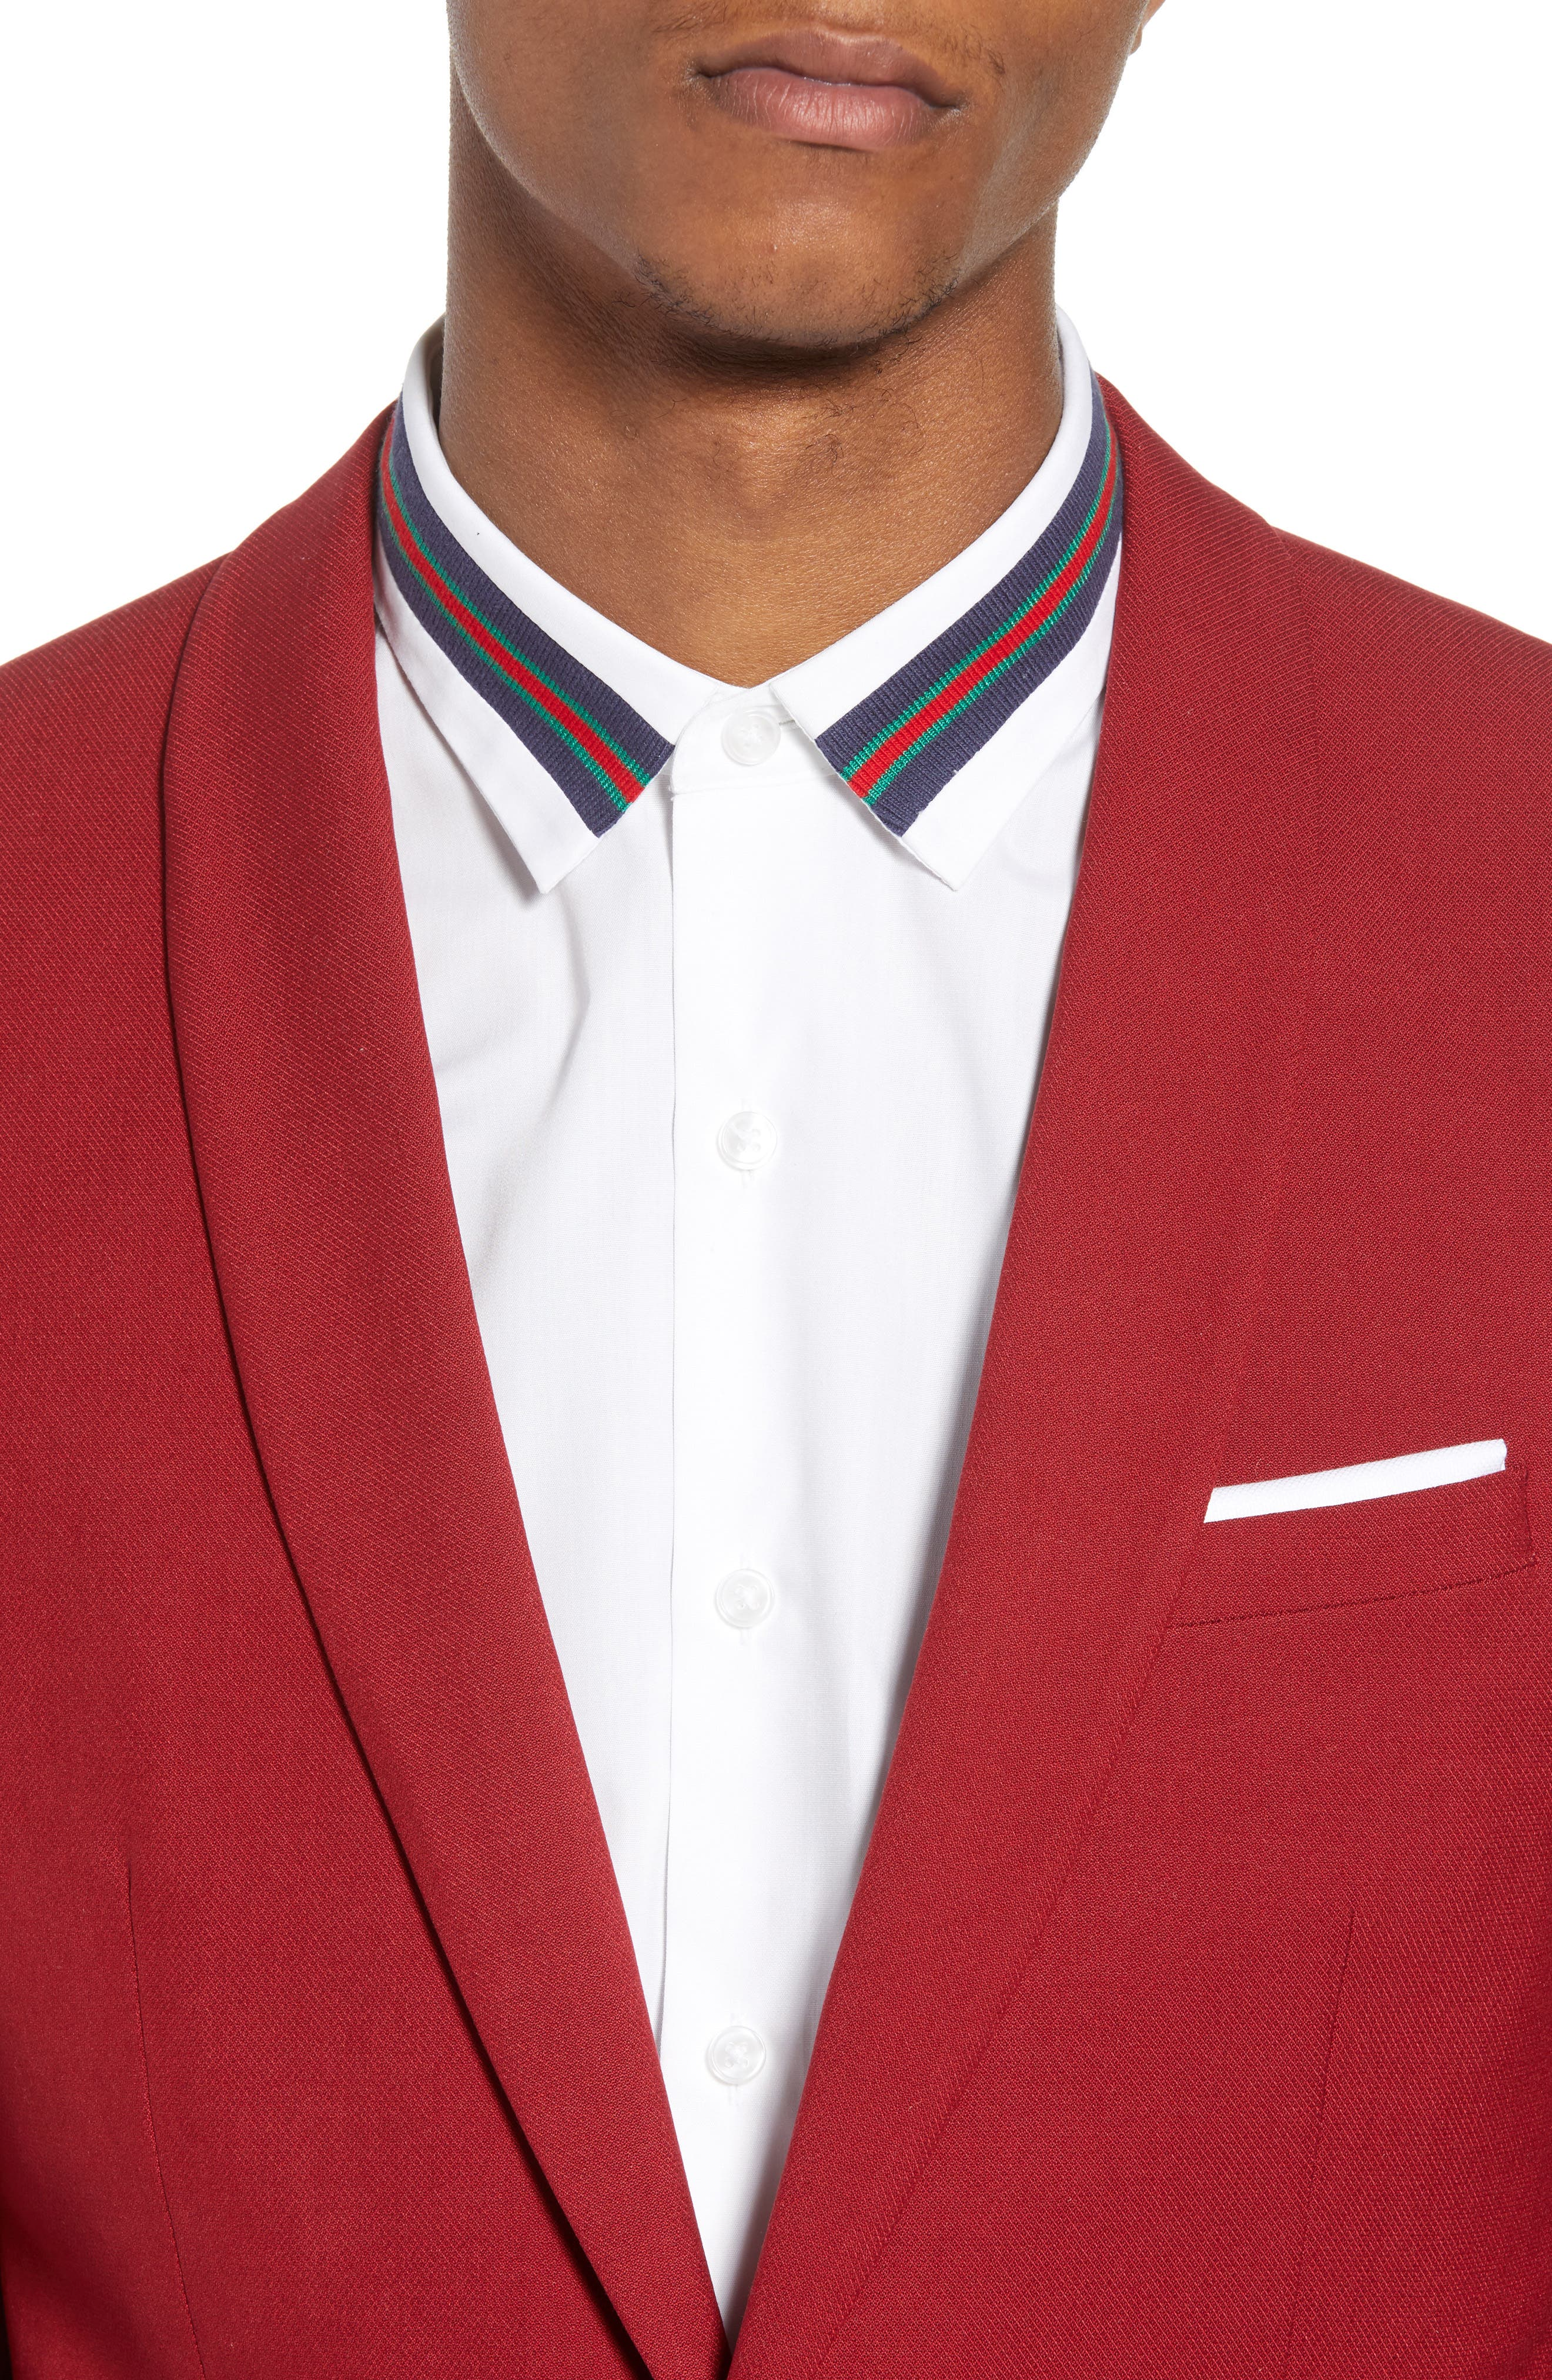 Skinny Fit Suit Jacket,                             Alternate thumbnail 4, color,                             Red